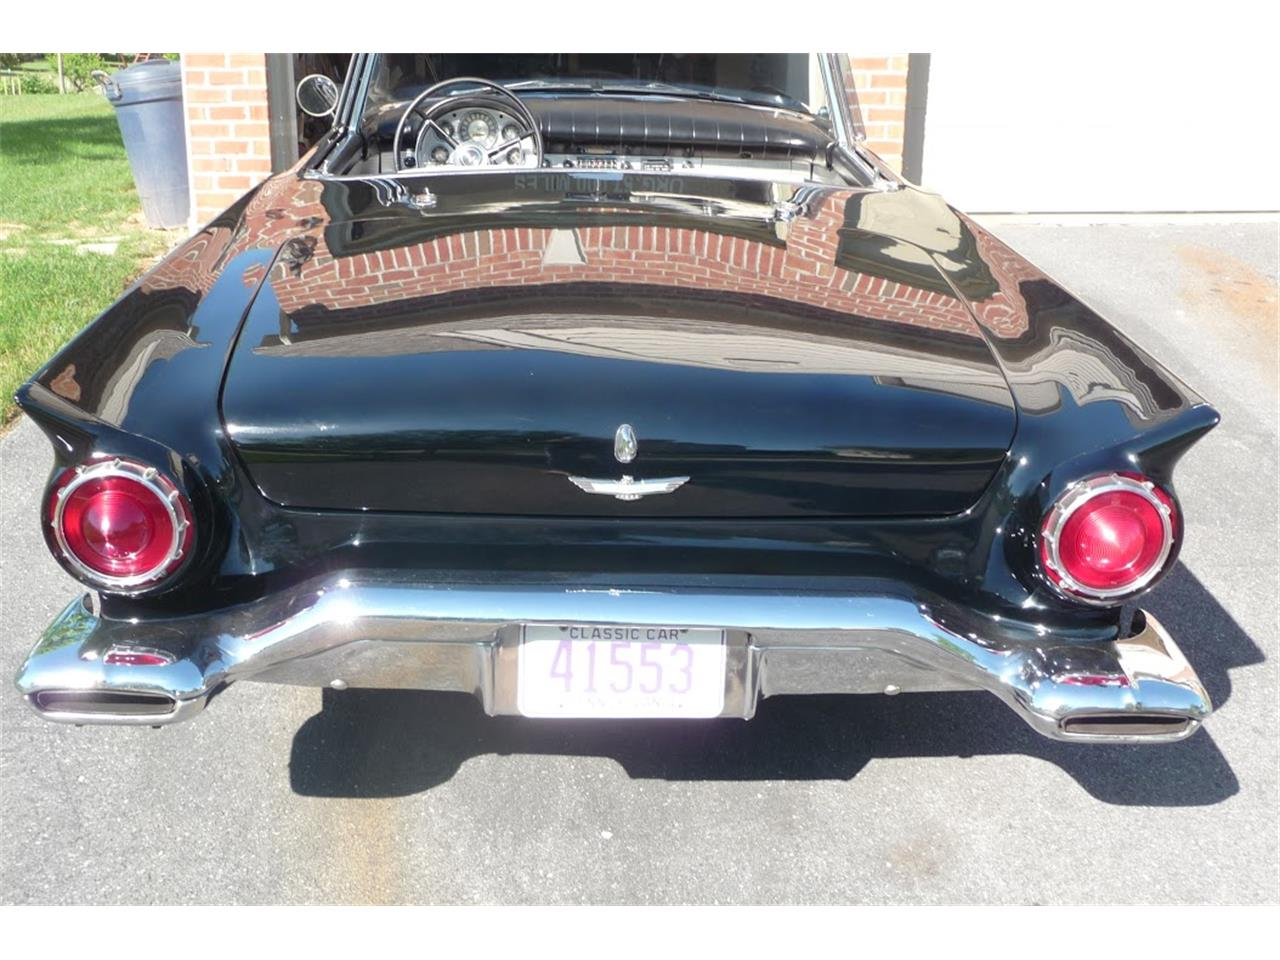 Large Picture of '57 Ford Thunderbird located in Pennsylvania Offered by a Private Seller - EU8T